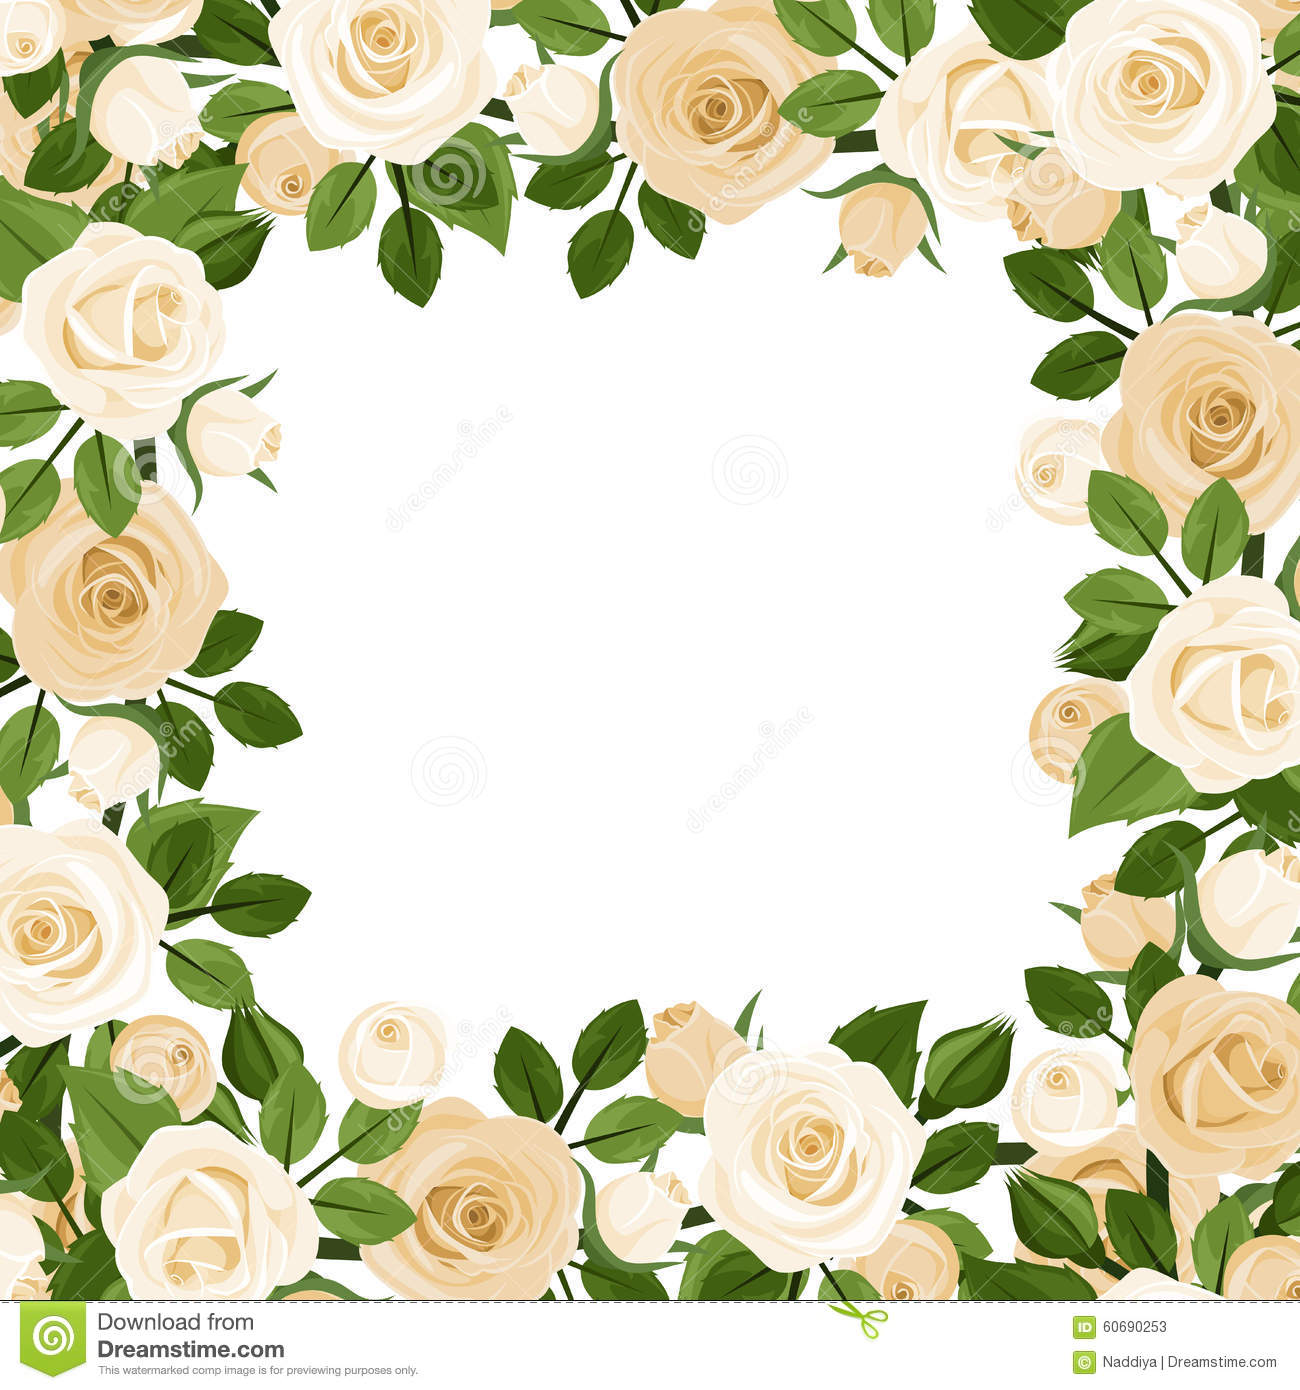 Vector Background With White Roses. Stock Vector - Illustration of ...